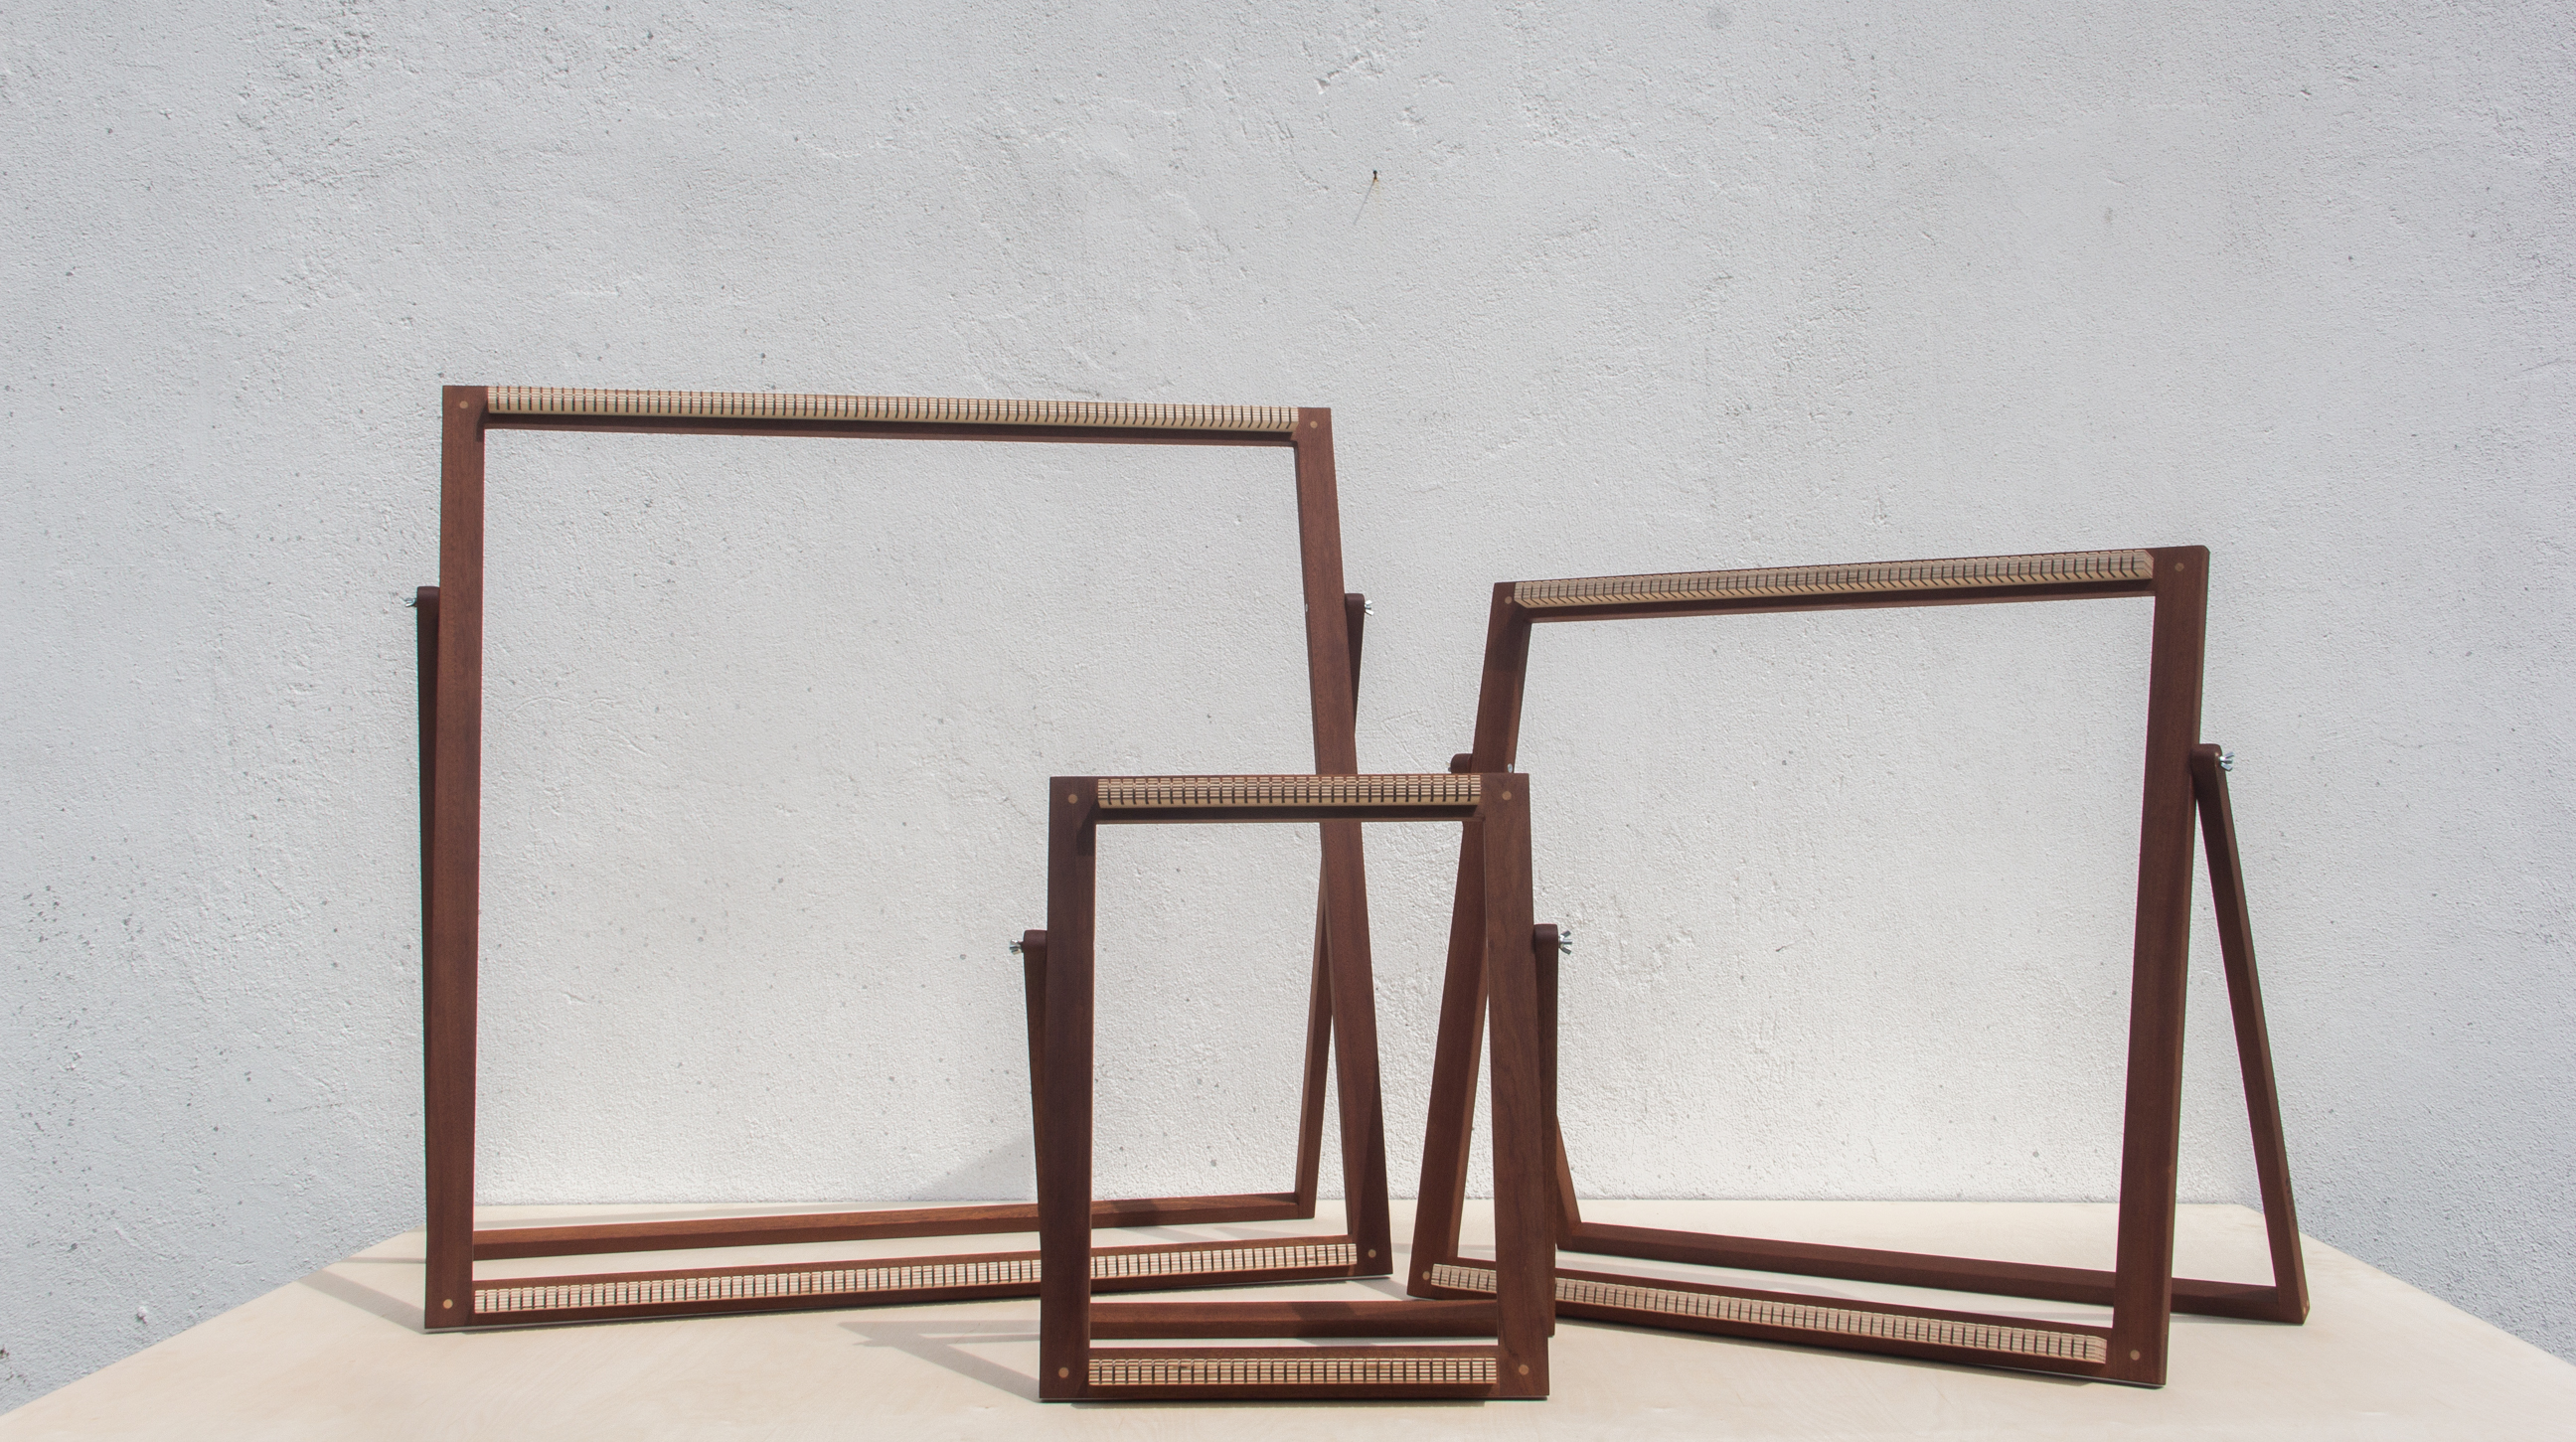 Teares | Weaving Looms